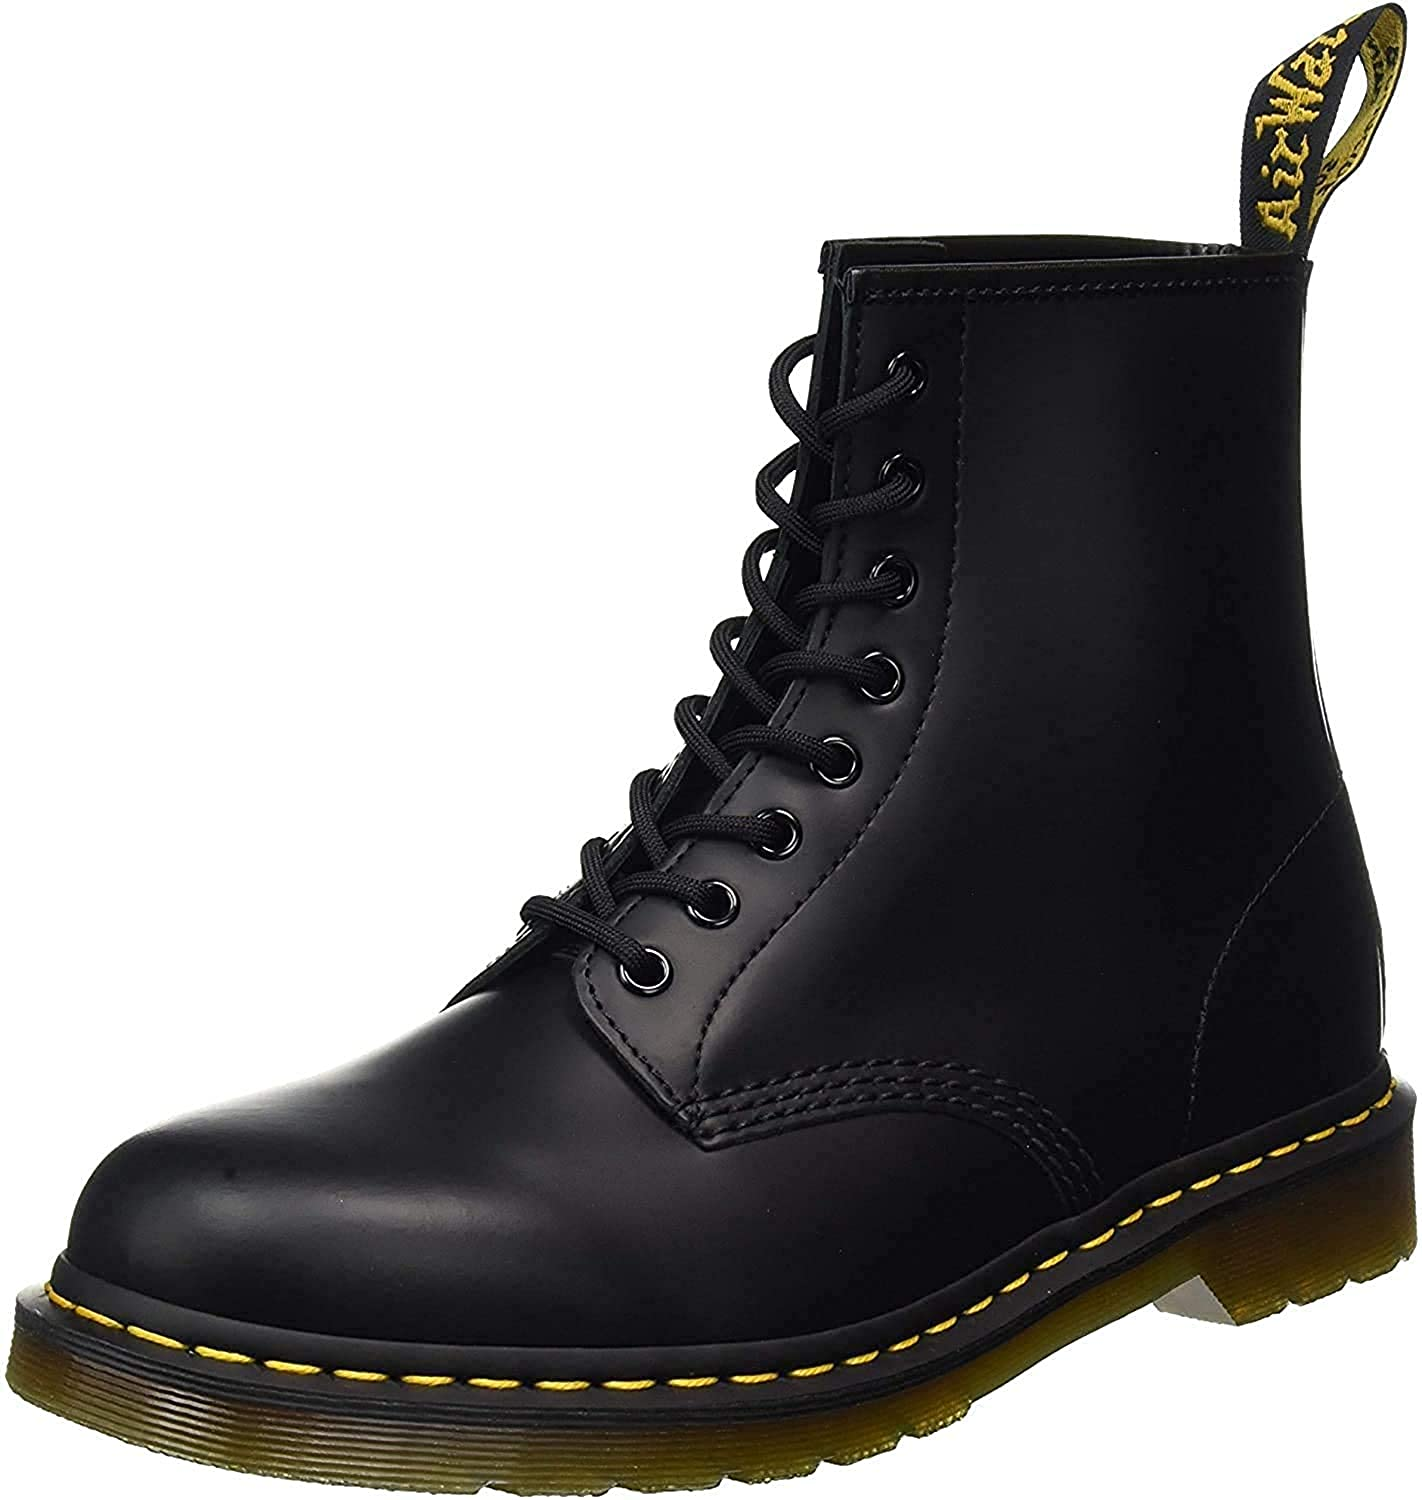 '1460' Boot by Dr. Martens, available on nordstrom.com for $150 Gigi Hadid Shoes Exact Product